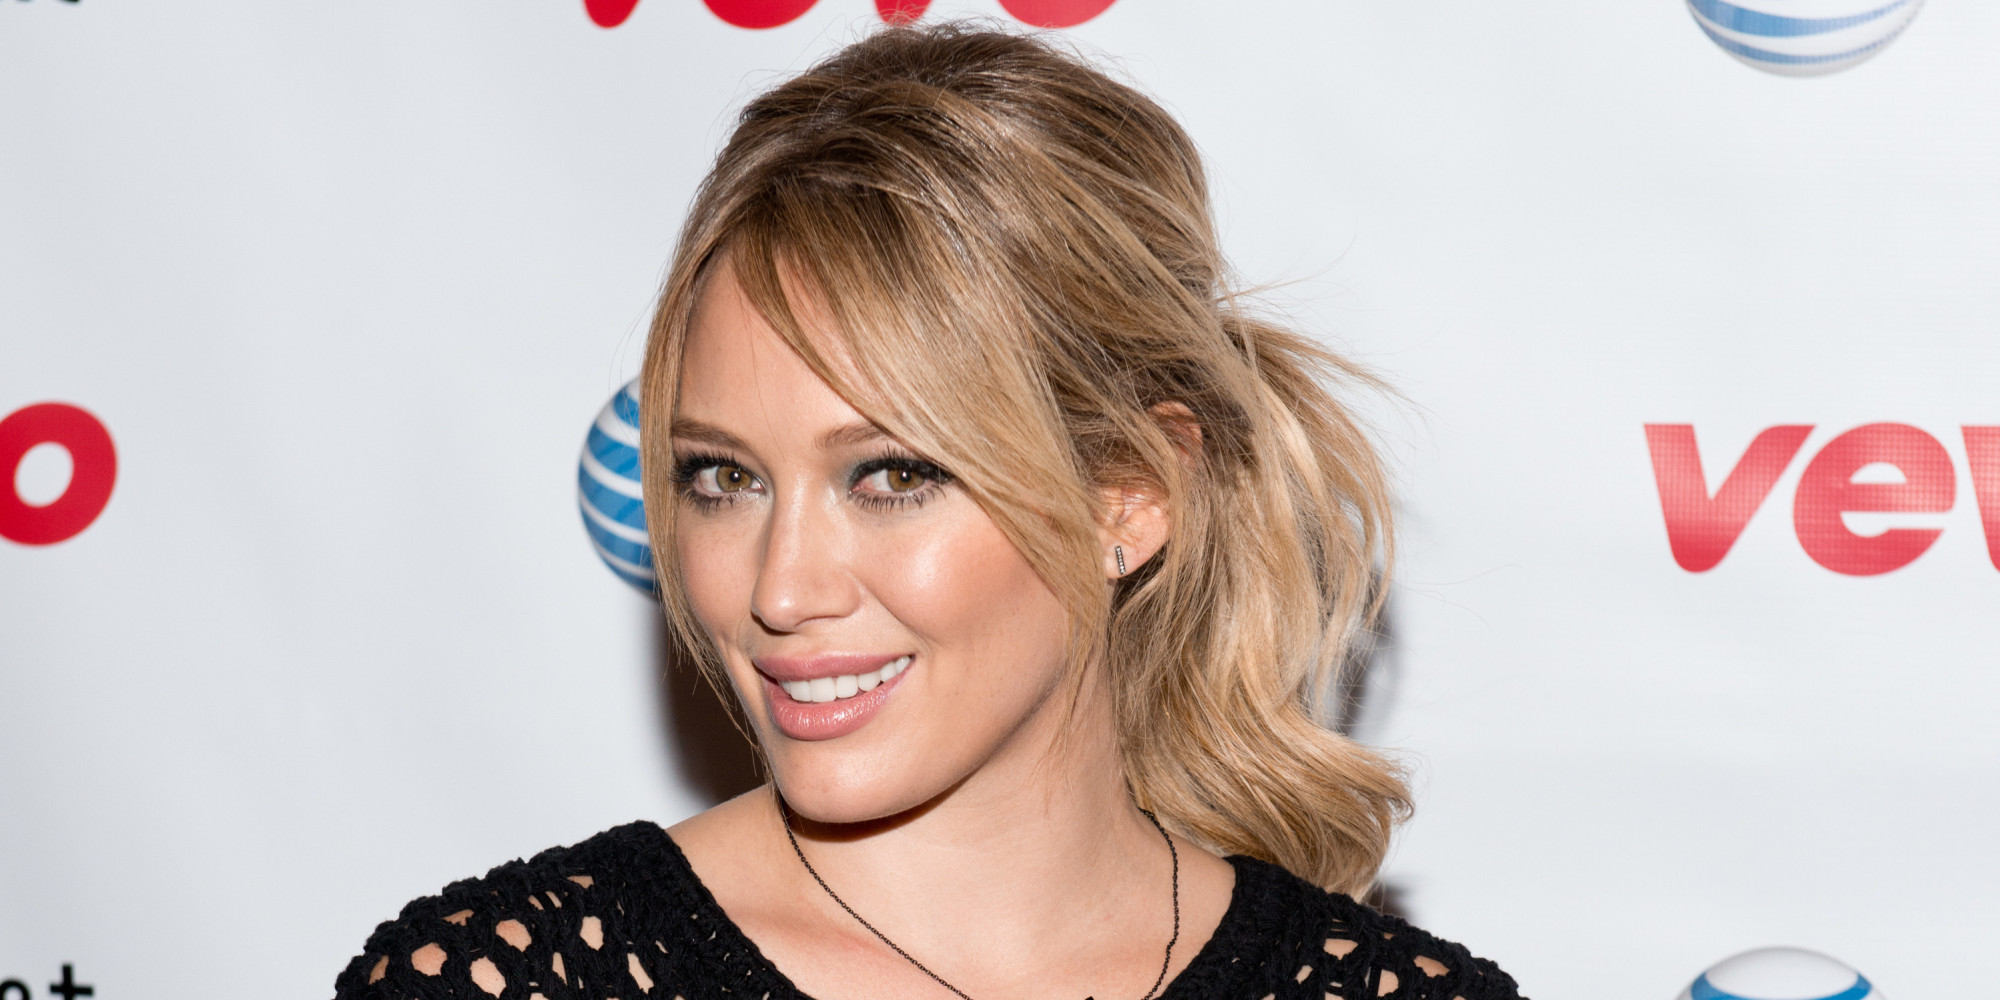 Hilary Duff Turns Heads At The 'All About You' Premiere Party ... Hilary Duff